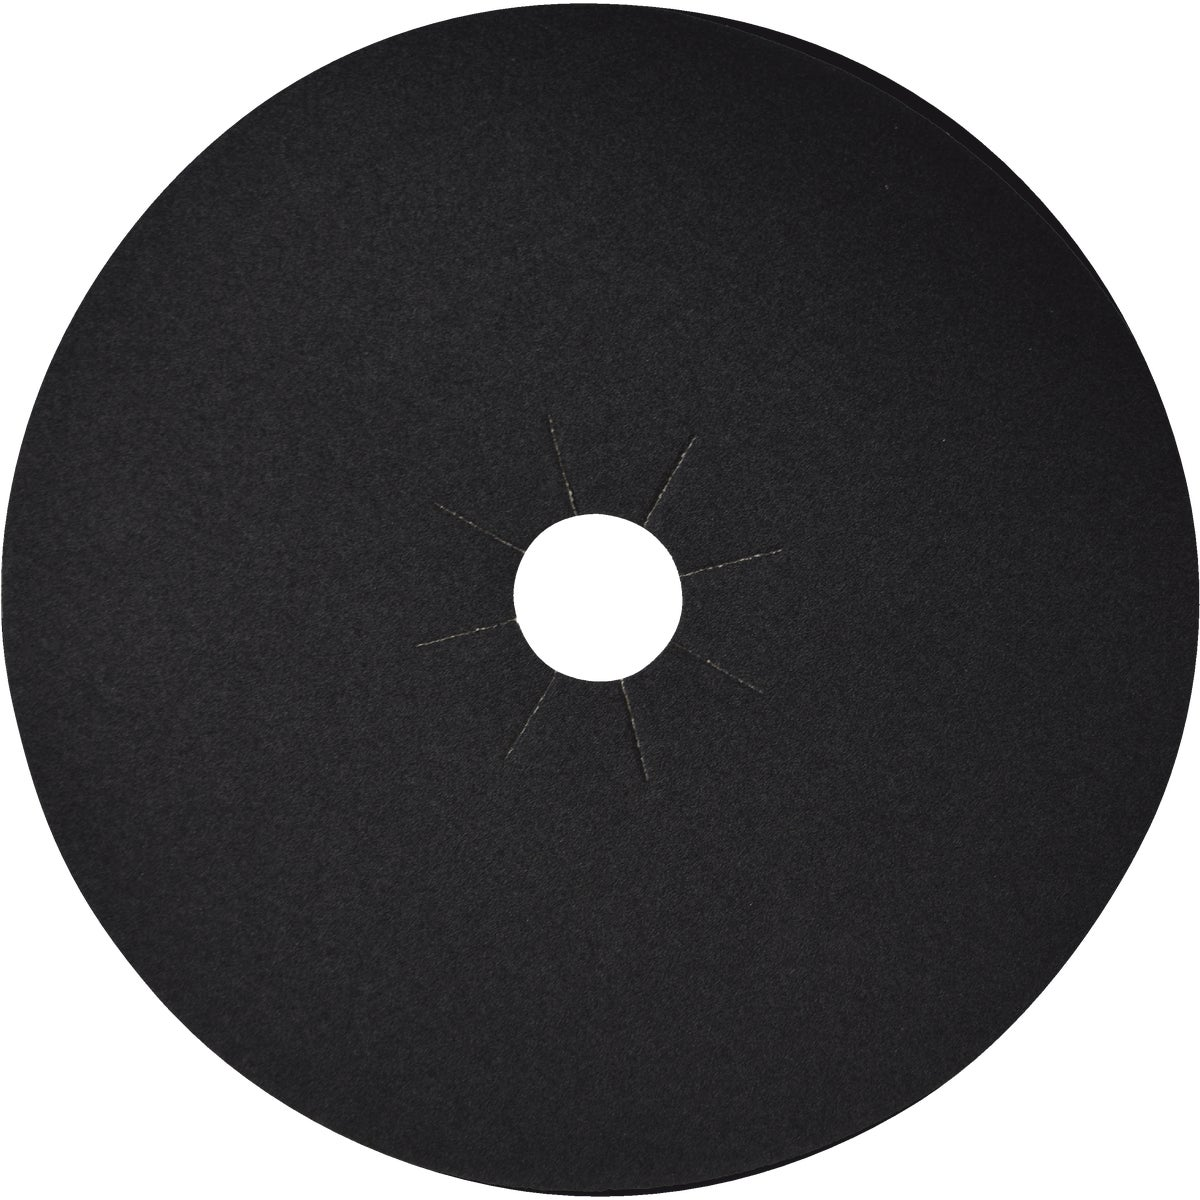 "16"" 60G FLR SANDING DISC - 007-816260 by Virginia Abrasives"